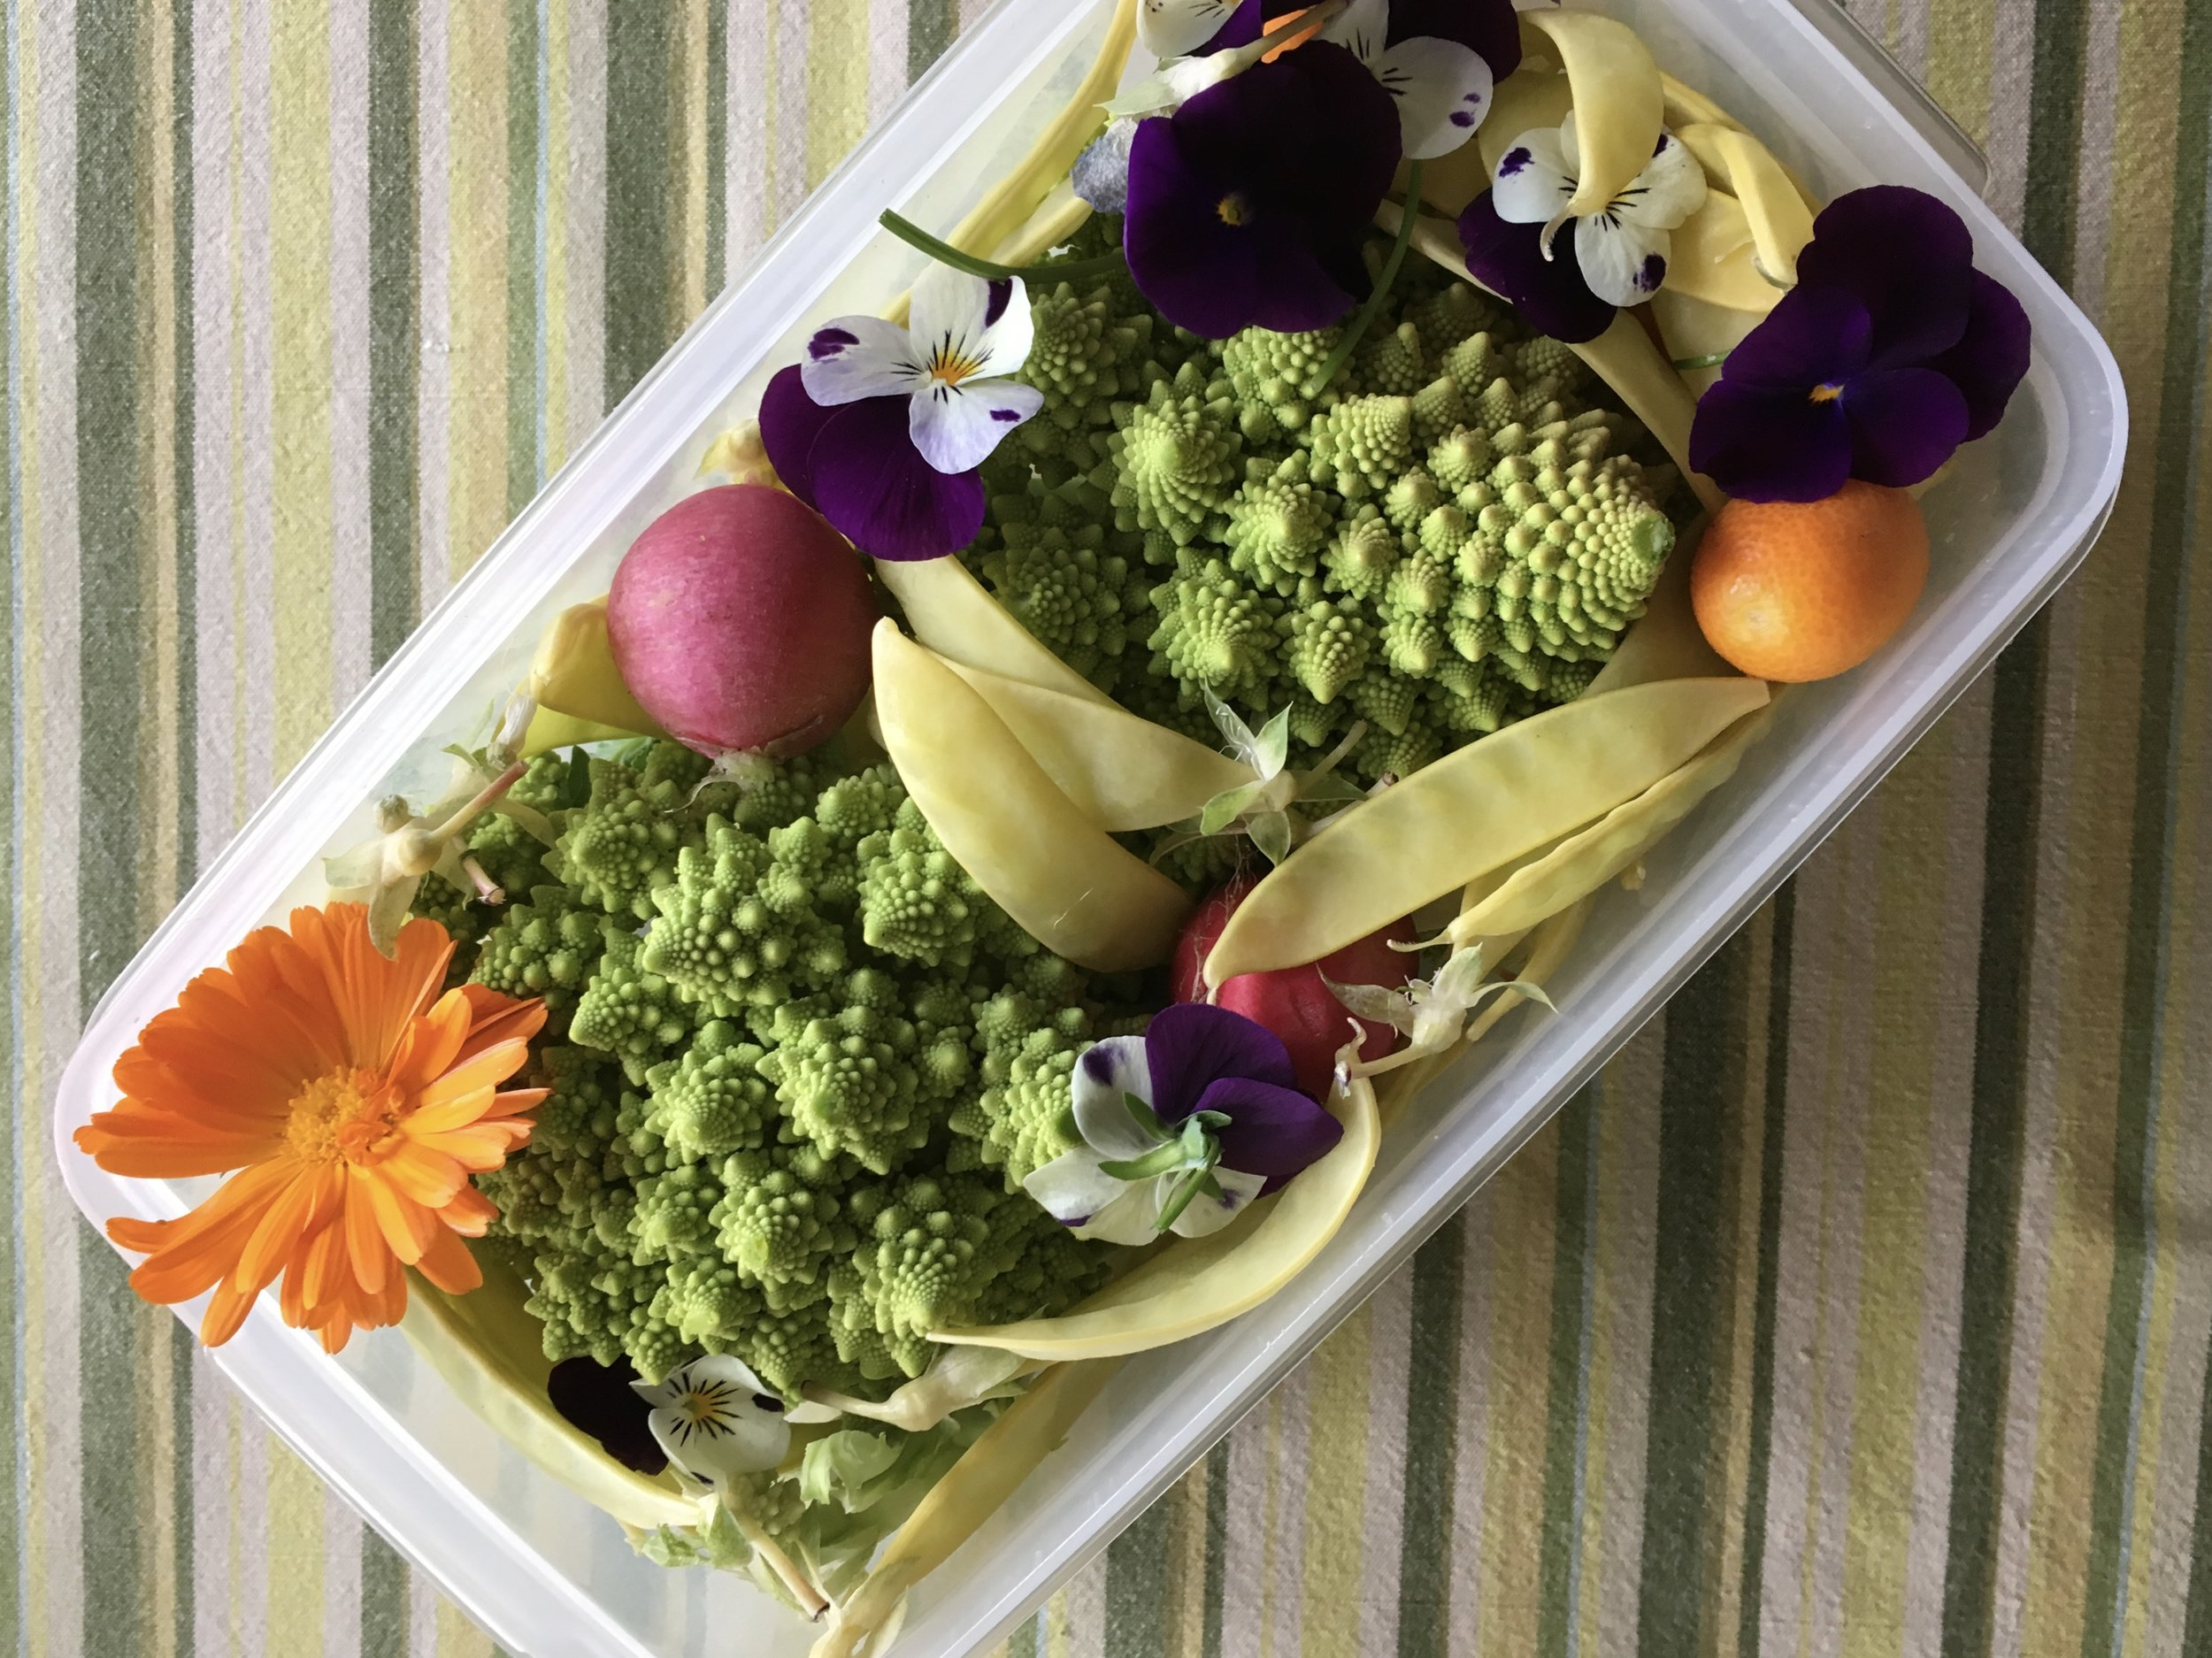 Here's a container of garden goodness I packed in my suitcase for my trip to the Pacific Northwest. Most every time I travel with veggies and fruit in my suitcase, TSA wants to take a look.